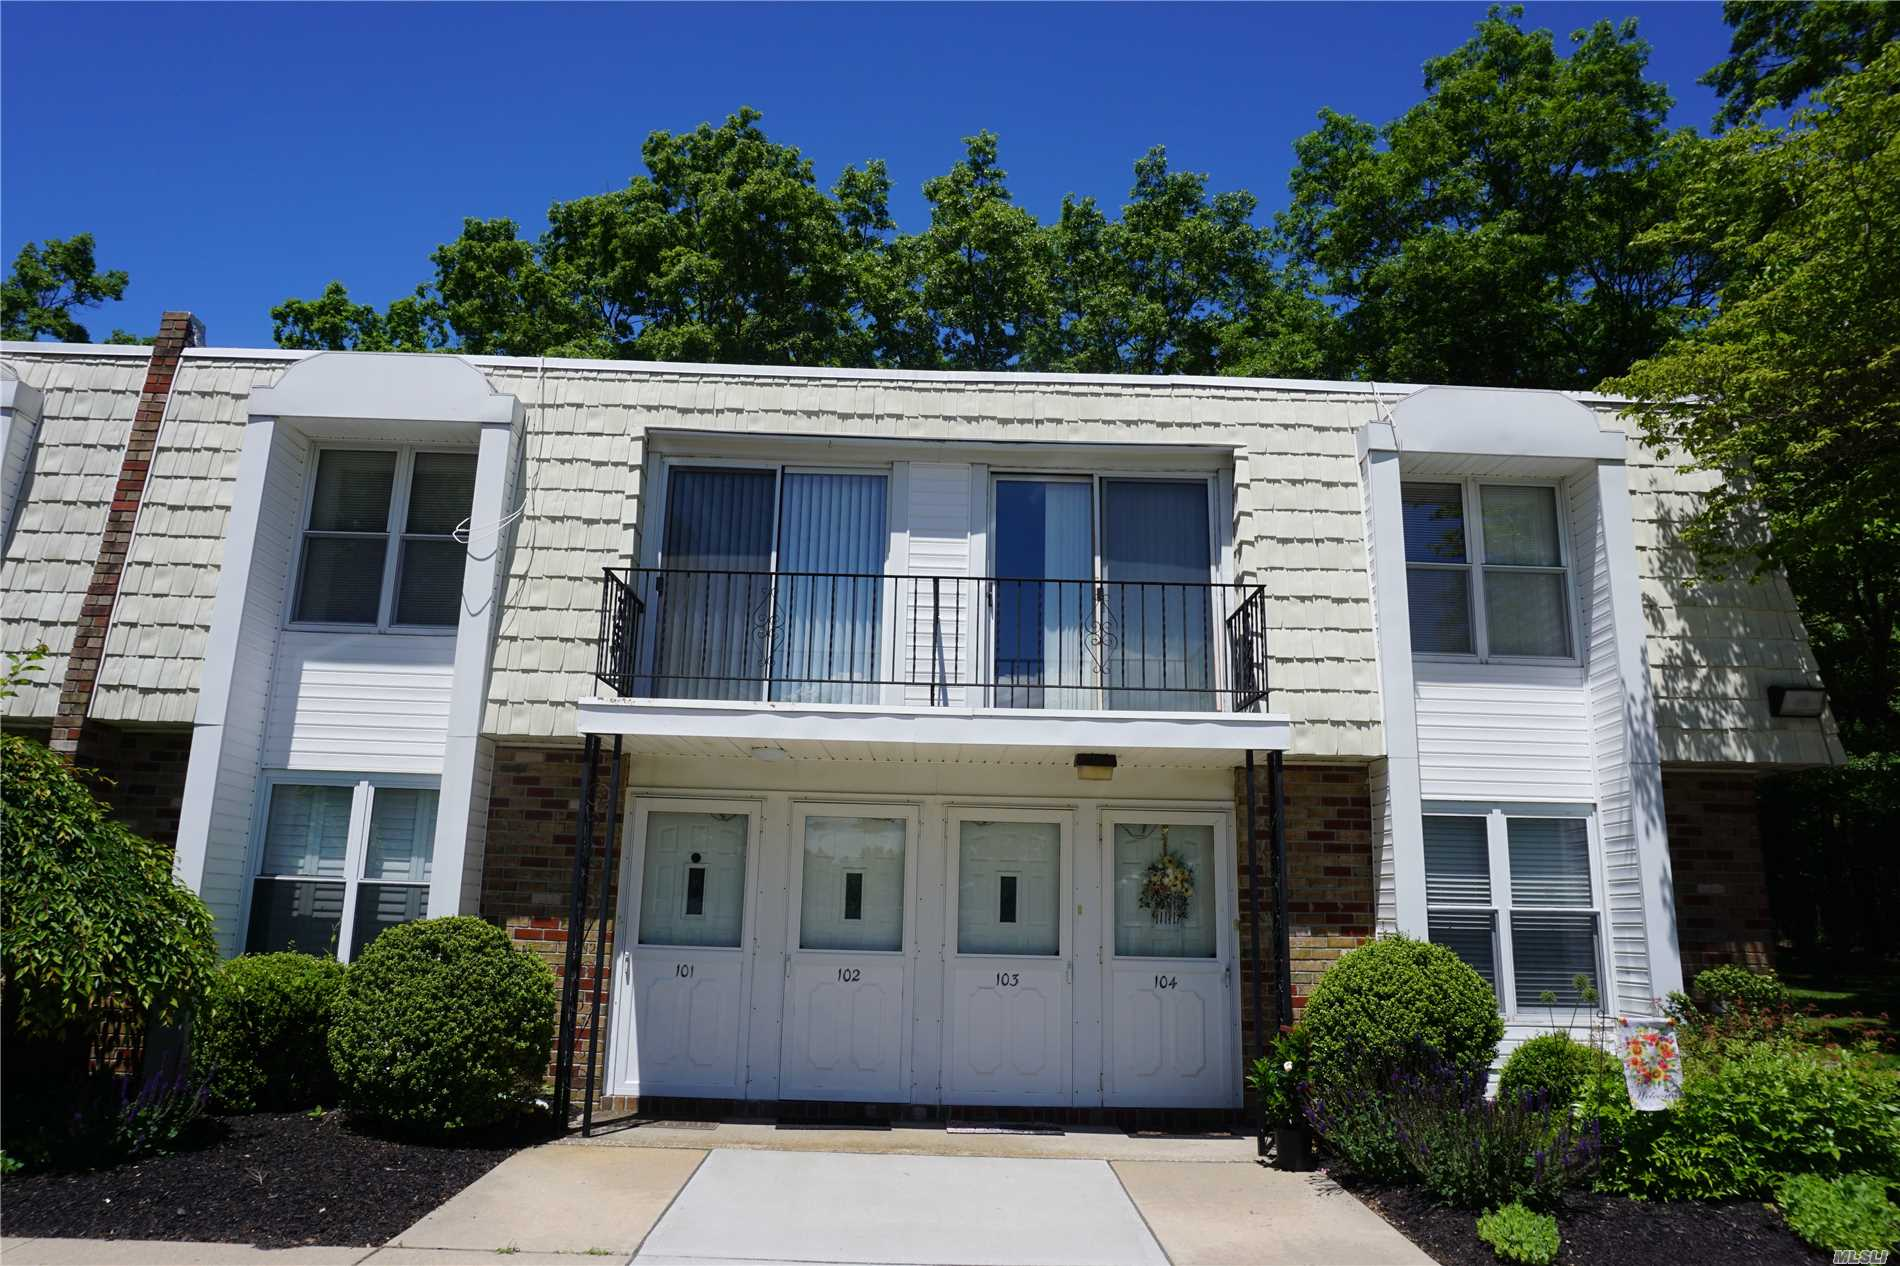 Sale May Be Subject To Terms & Conditions Of An Offering Plan. Buyer Responsible For Verifying All Information. Co-Op Board Approval With Minimum Of $40K/ Year Income & 650 Credit Score. No Pets Allowed. Monthly Maintenance Includes Taxes , Water , Gas Outside Maintenance, & Snow Removal.